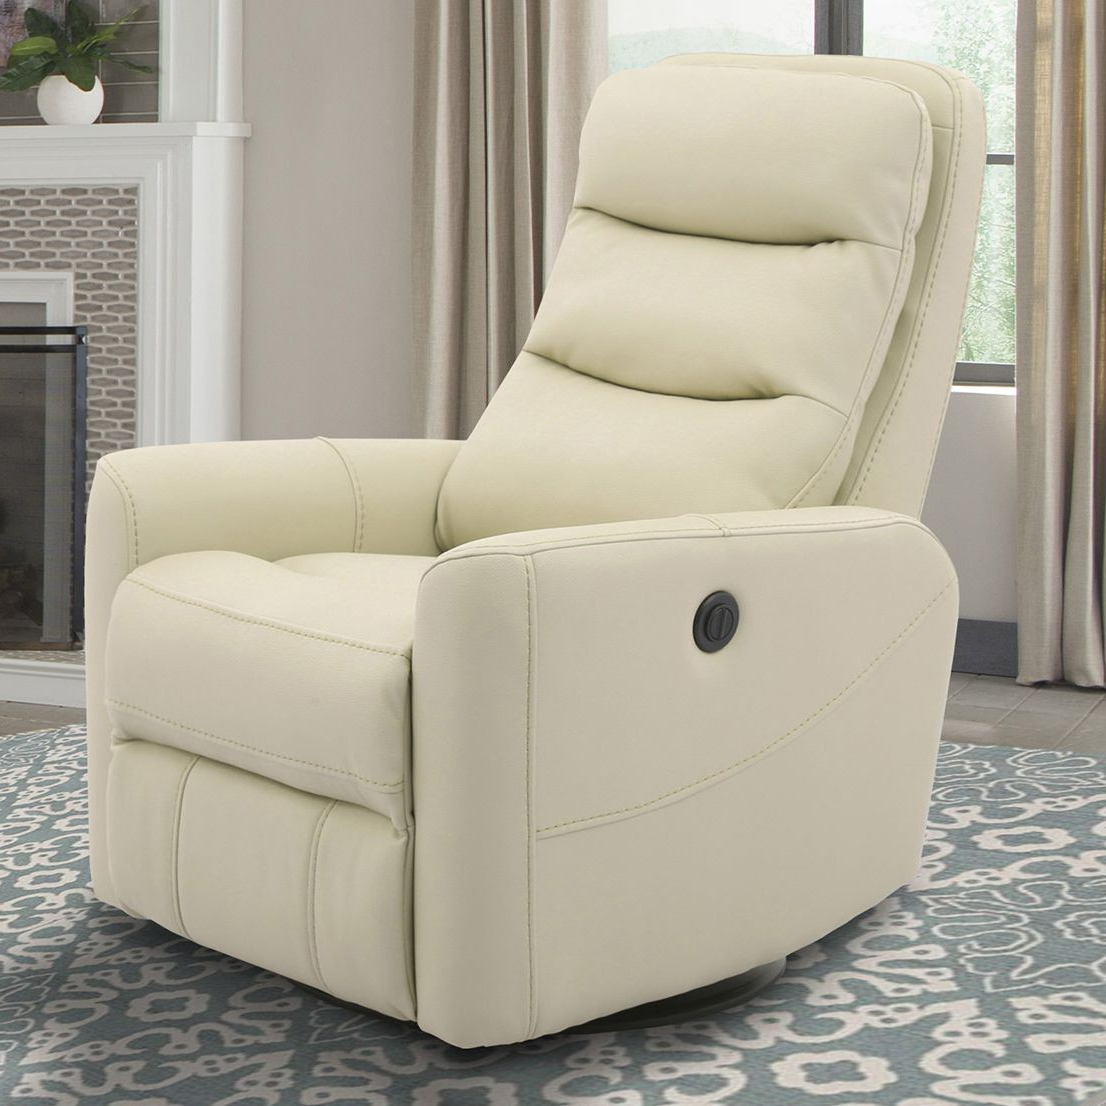 2018 Parker Living Hercules Anywhere Power Swivel Recliner In Oyster Pertaining To Hercules Oyster Swivel Glider Recliners (Gallery 7 of 20)